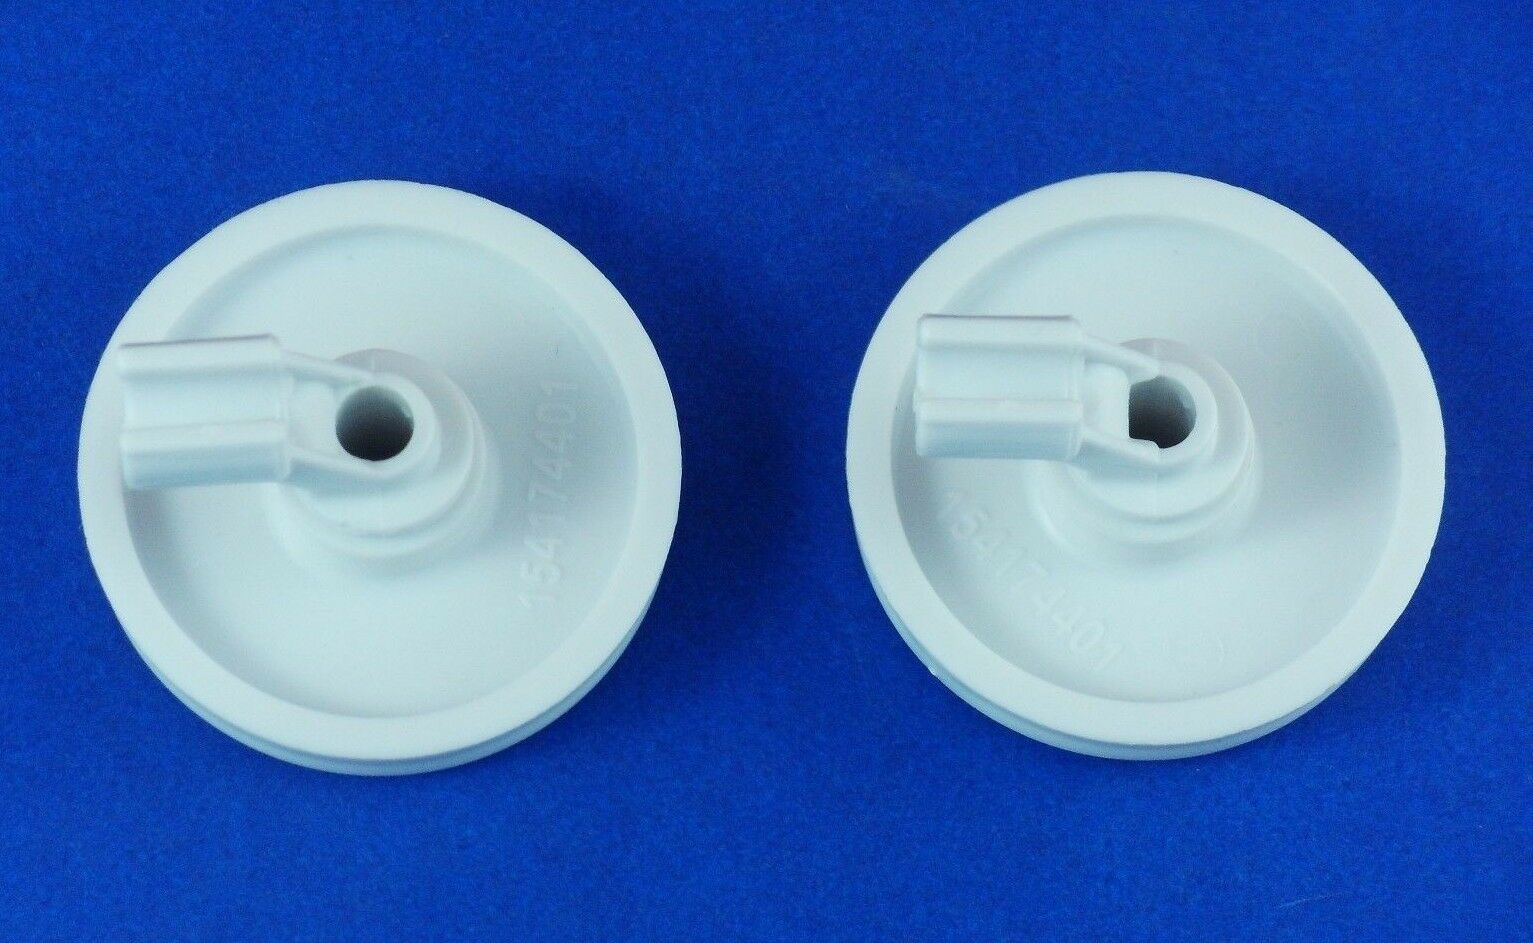 154174501 Dishwasher Rack Roller for Frigidaire, Electrolux New 2 Pack